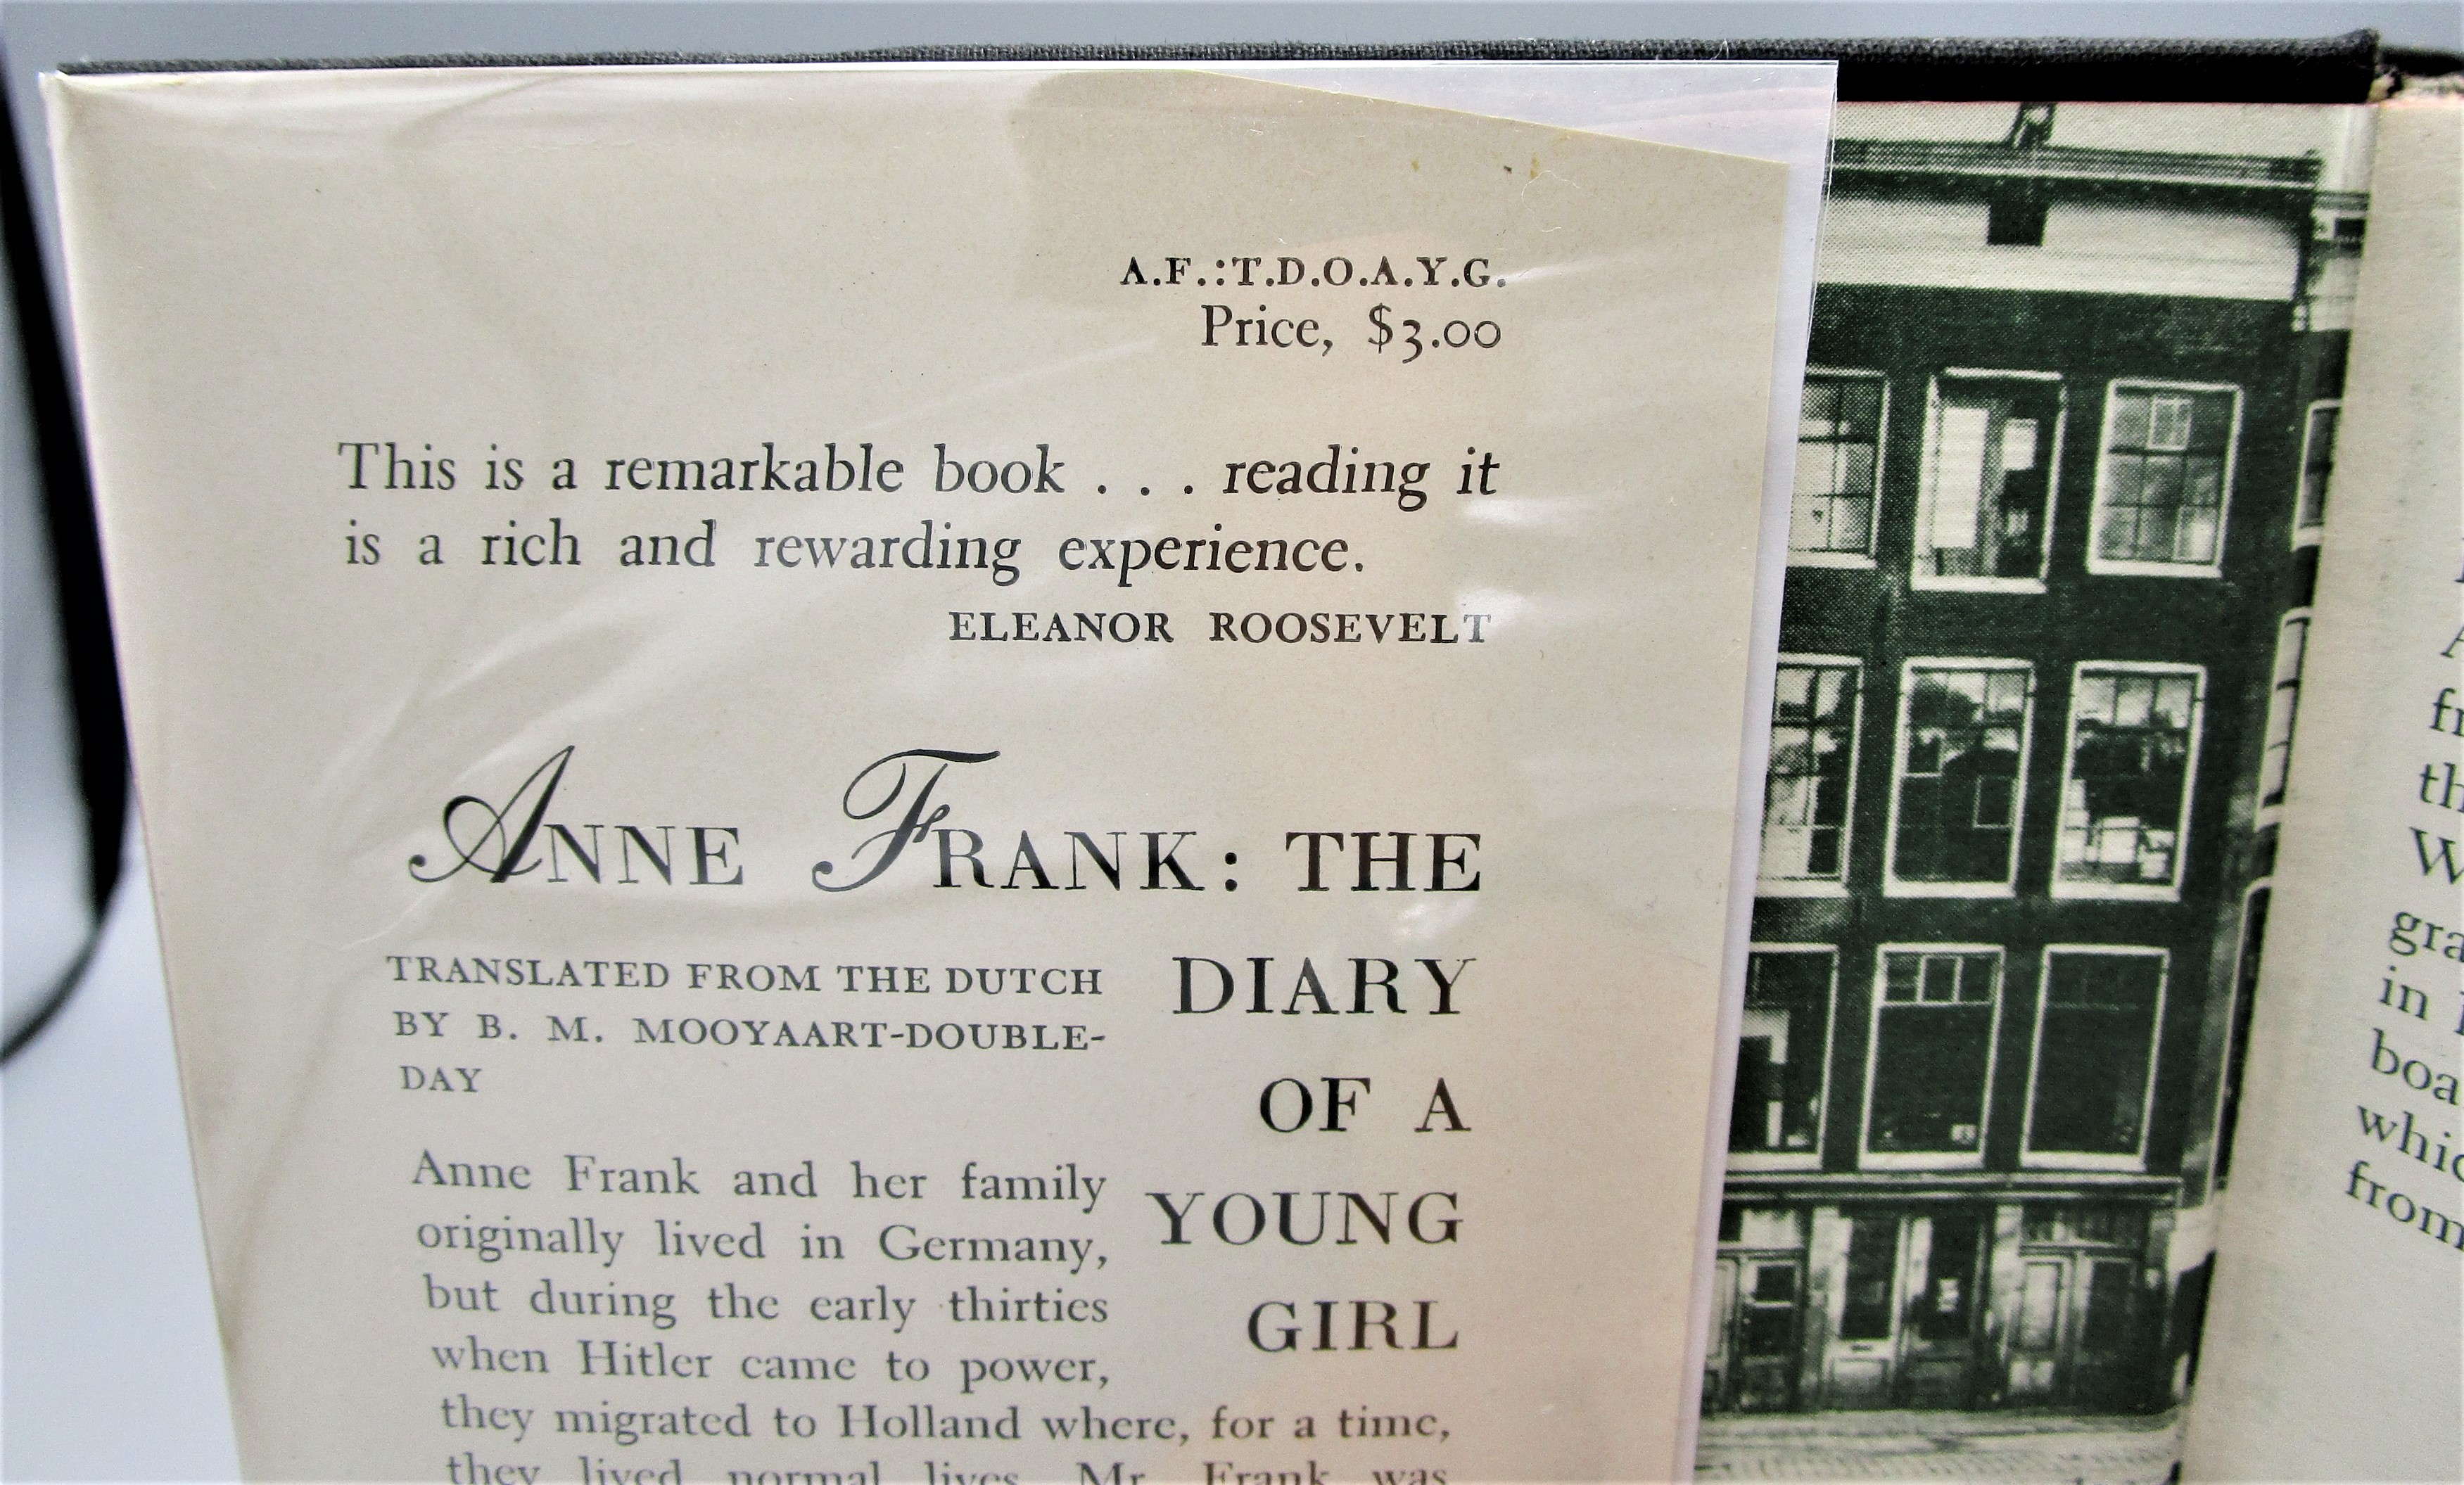 ANNE FRANK: THE DIARY OF A YOUNG GIRL - 1952 [1st English Ed]